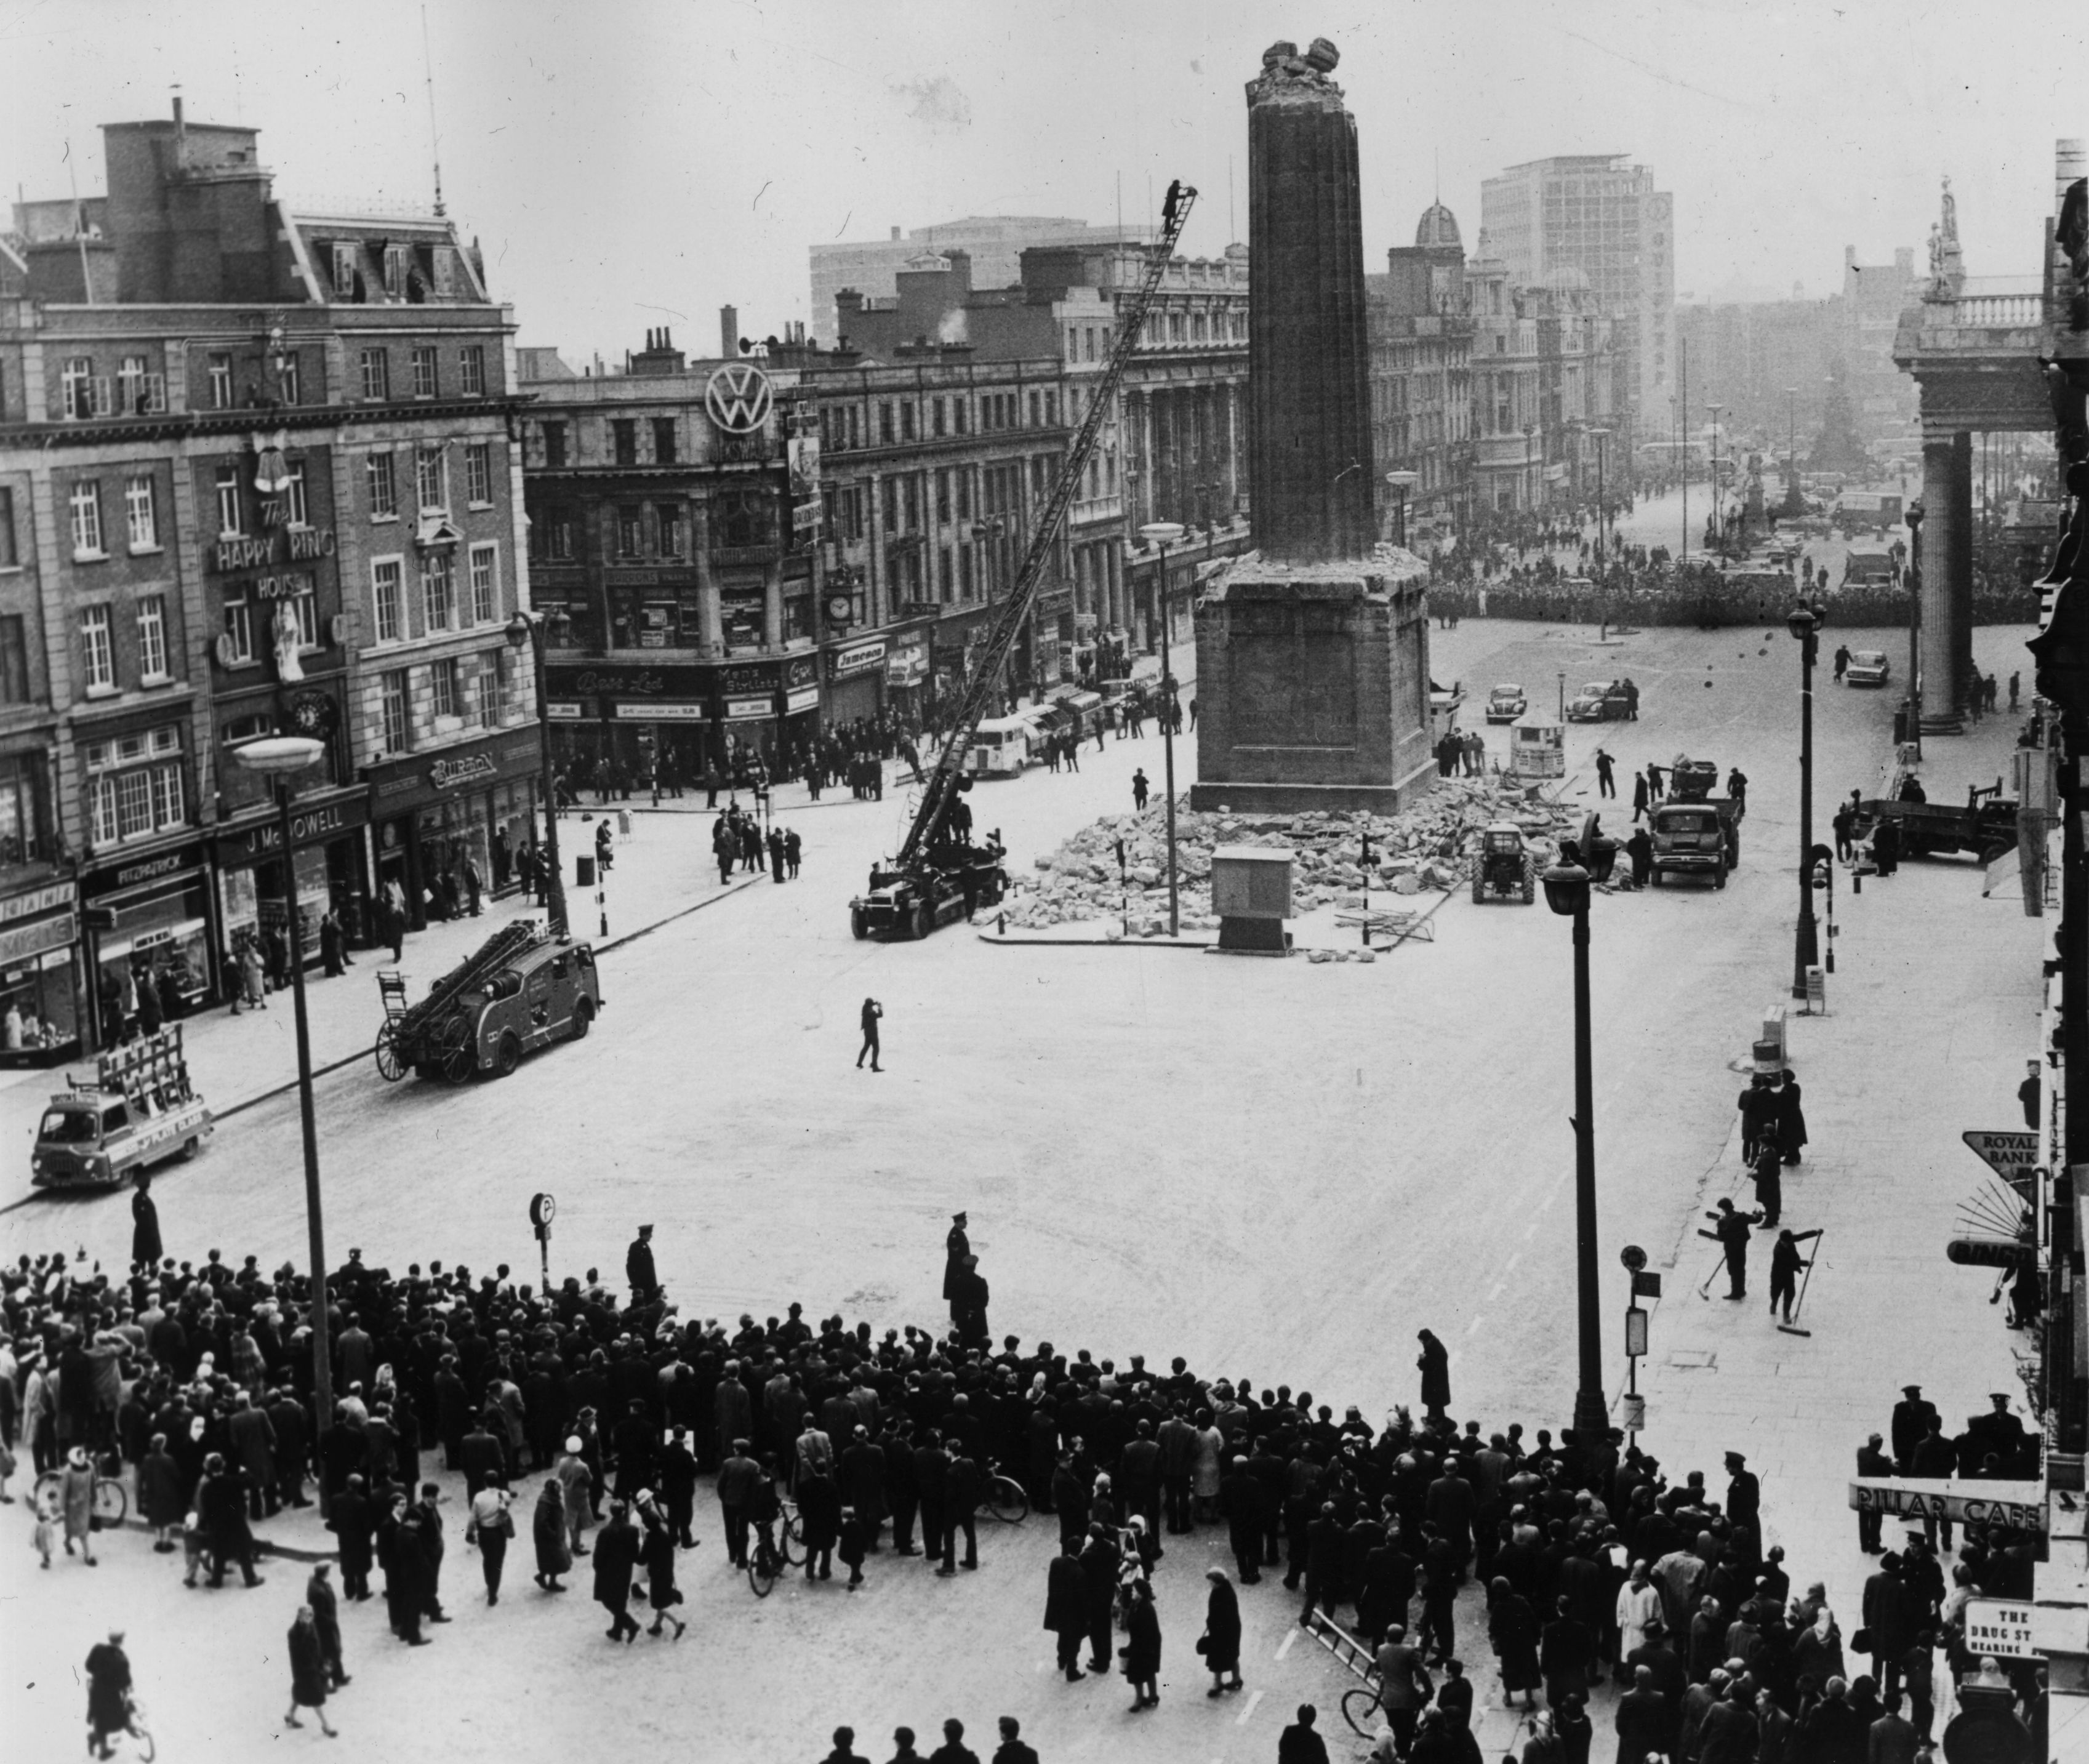 9th March 1966: During the 50th anniversary year of the 1916 Easter Rising the Irish Army remove the remainder of Nelson's Pillar in the centre of O'Connell Street, Dublin, after it was demolished by an explosion. (Photo by Keystone/Getty Images)